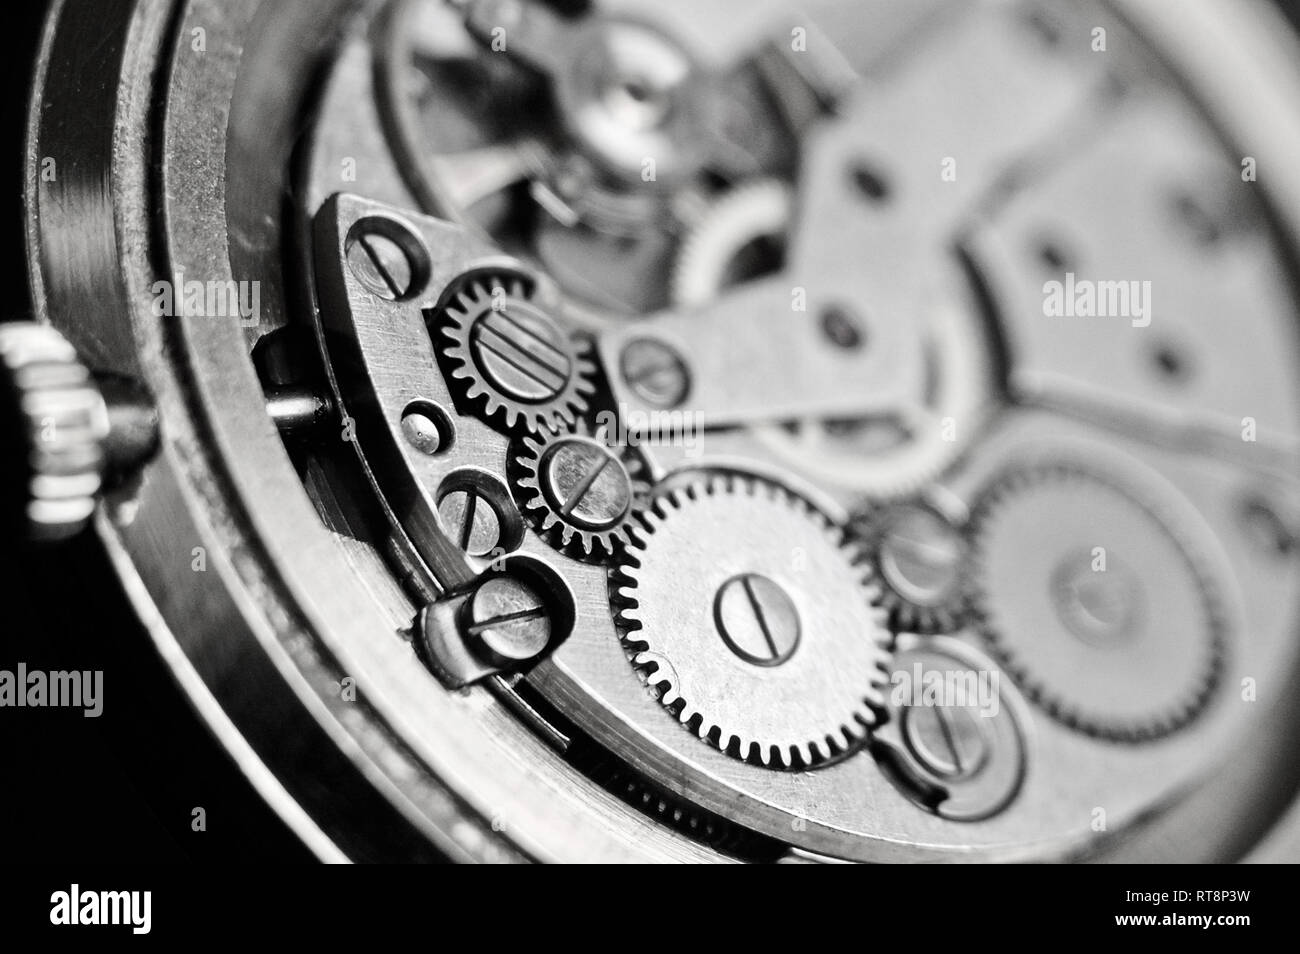 Mechanism of wrist watches in the clear. Shallow depth of field - Stock Image